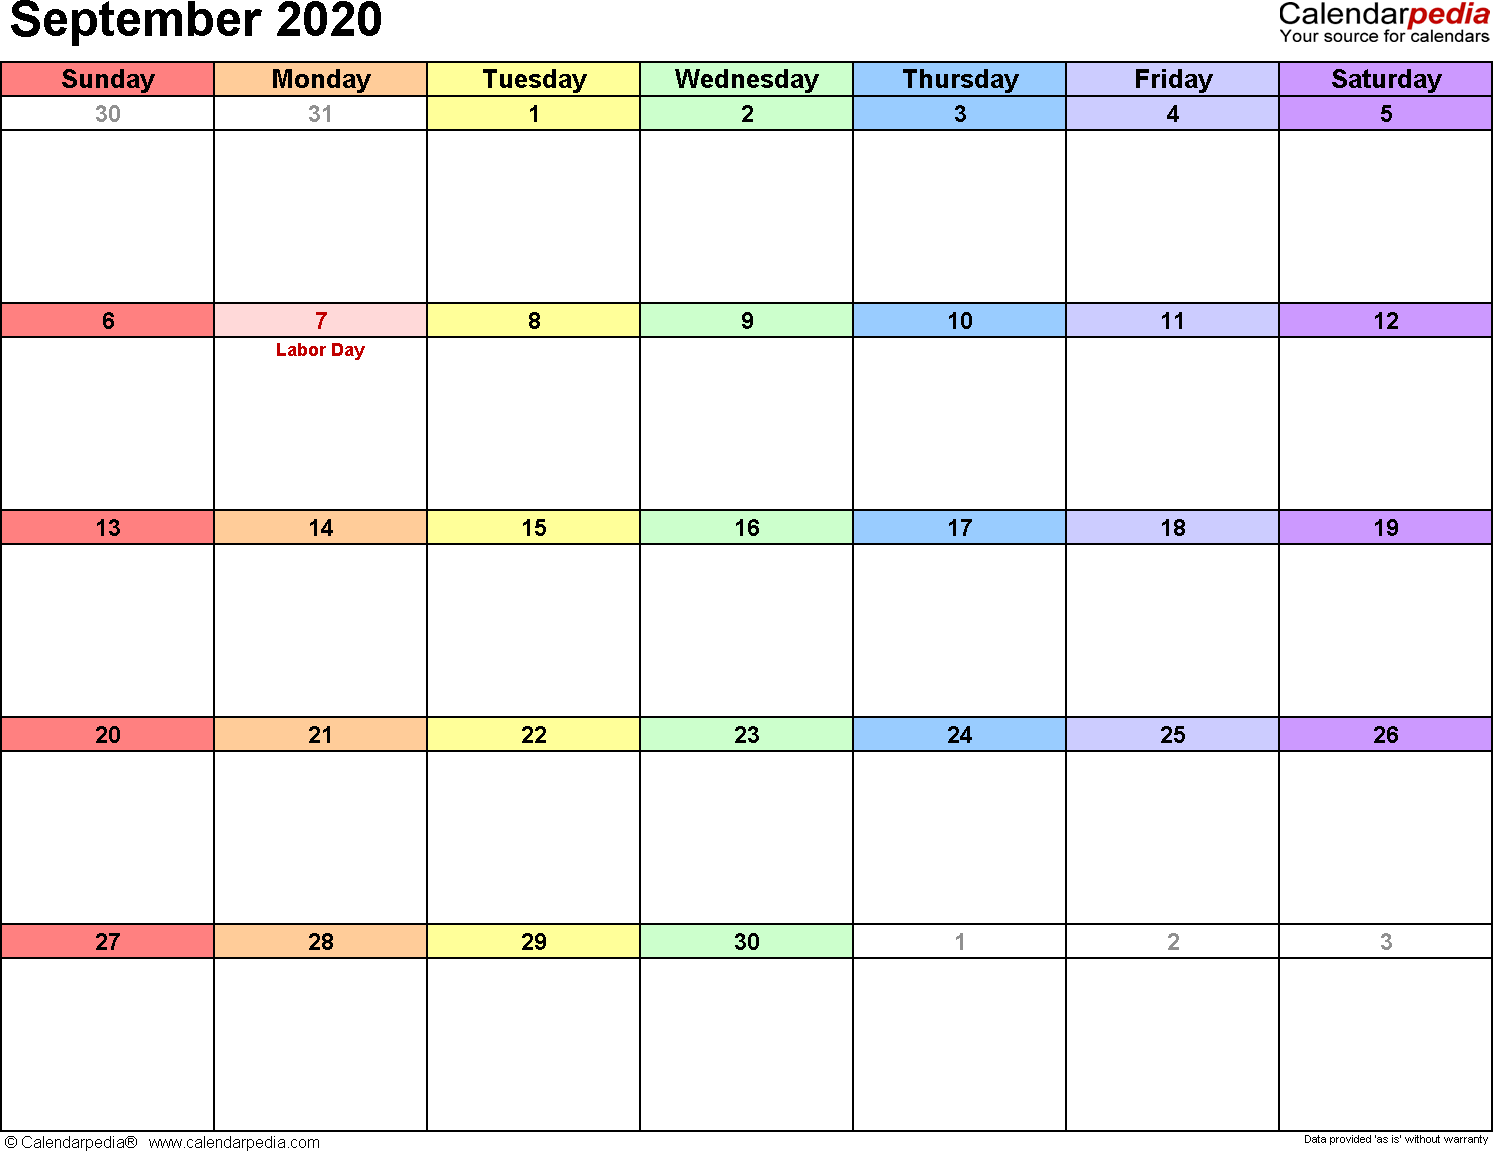 Calendar Sept 2020.September 2020 Calendars For Word Excel Pdf